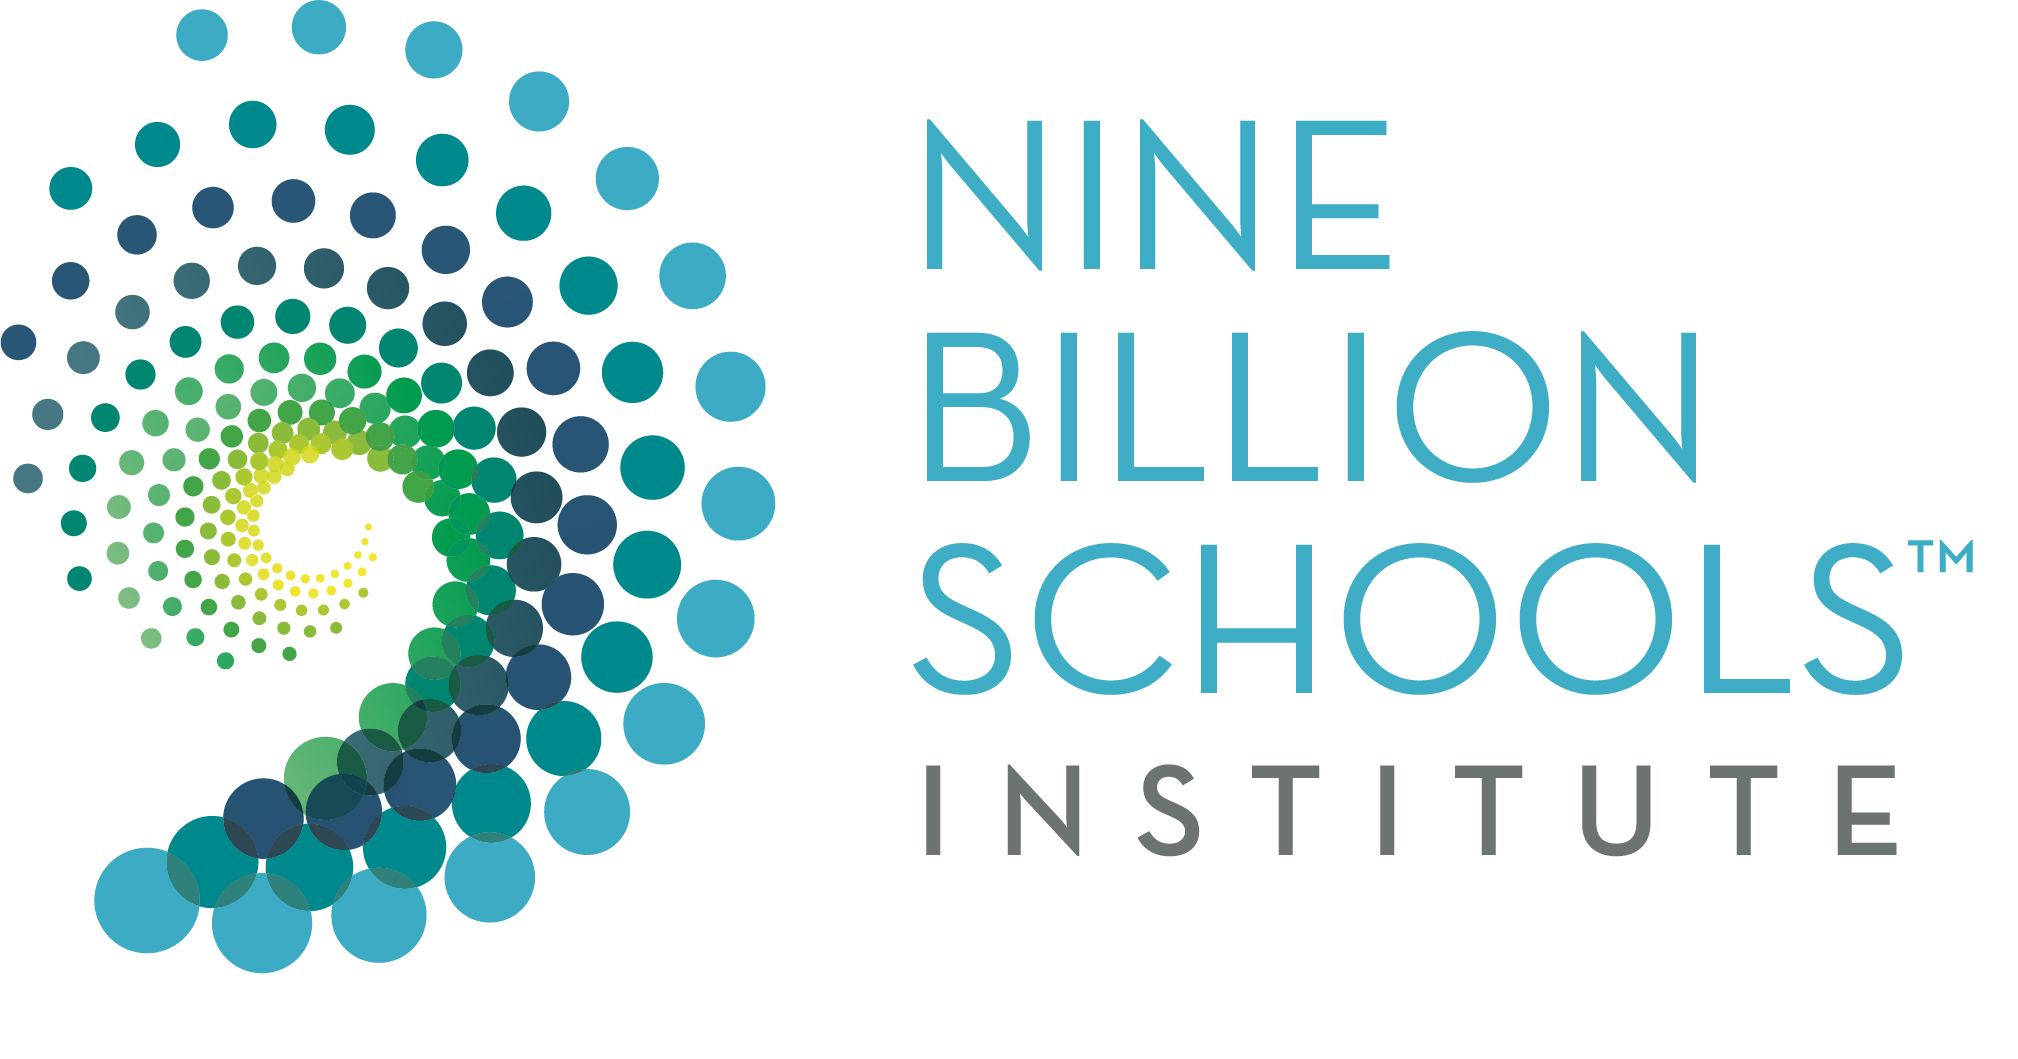 The 9 Billion Schools Institute was launched in 2018 as a nonprofit to advocate for and complete research surrounding personalized lifelong learning.